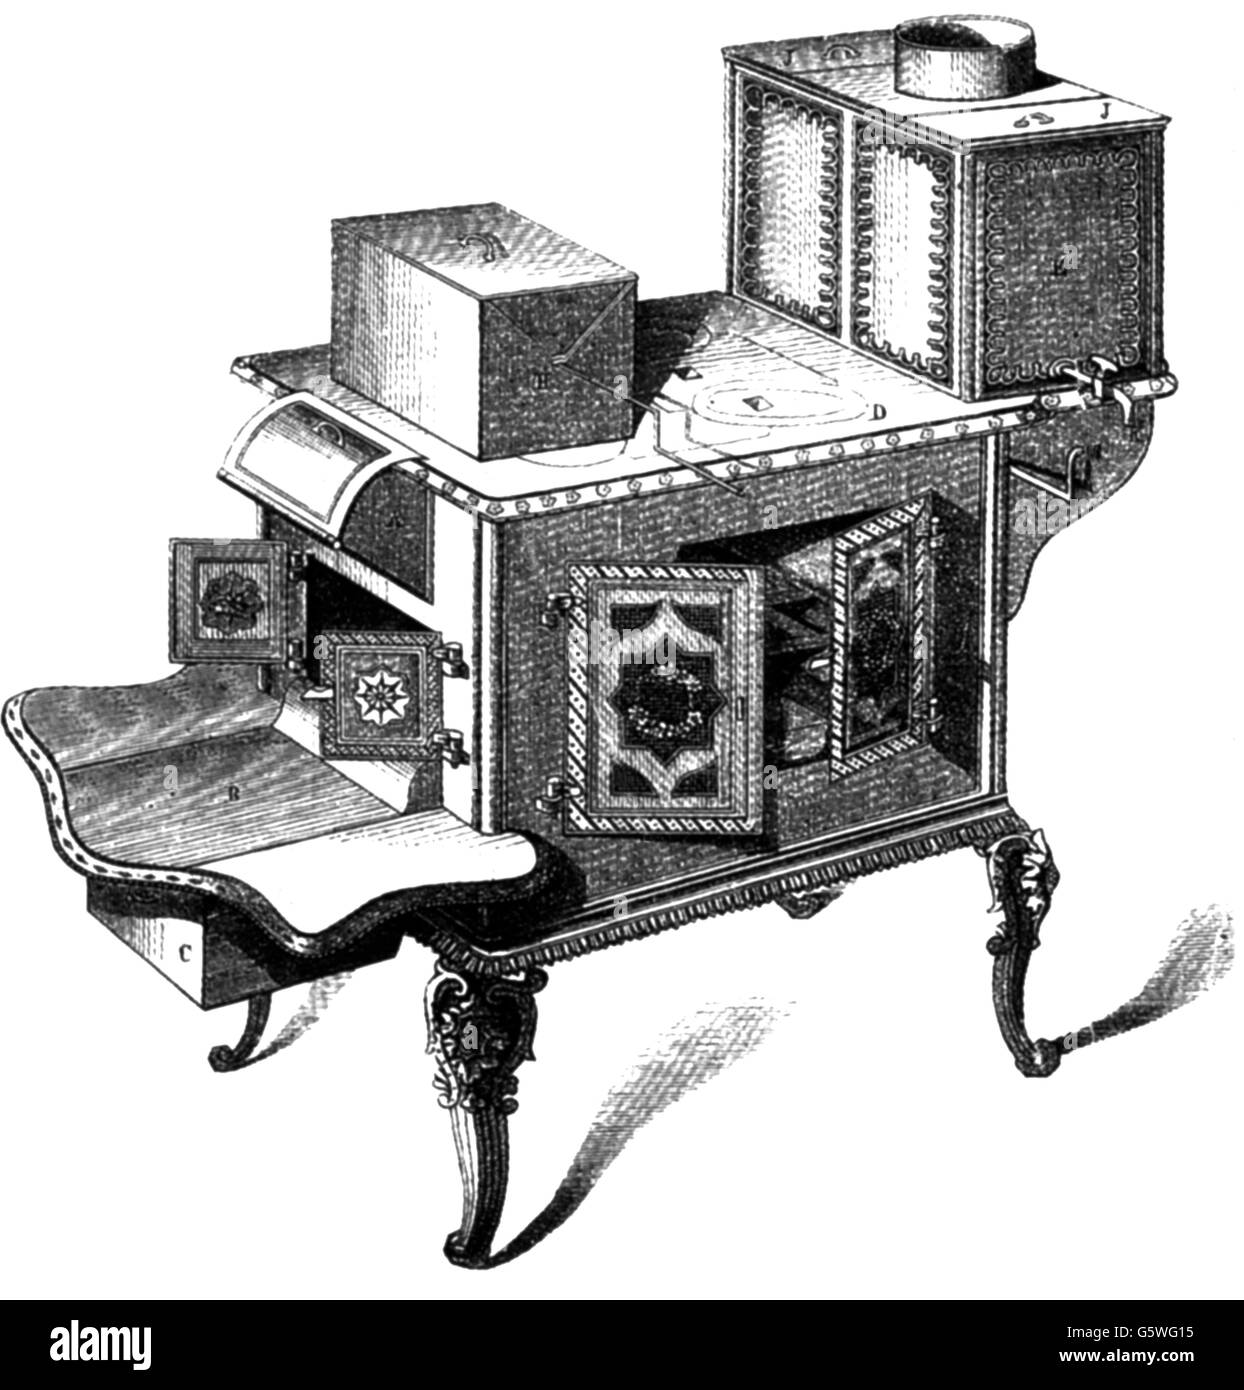 household, kitchen and kitchenware, cast-iron stove, USA, wood engraving, 19th century, 19th century, graphic, graphics, - Stock Image